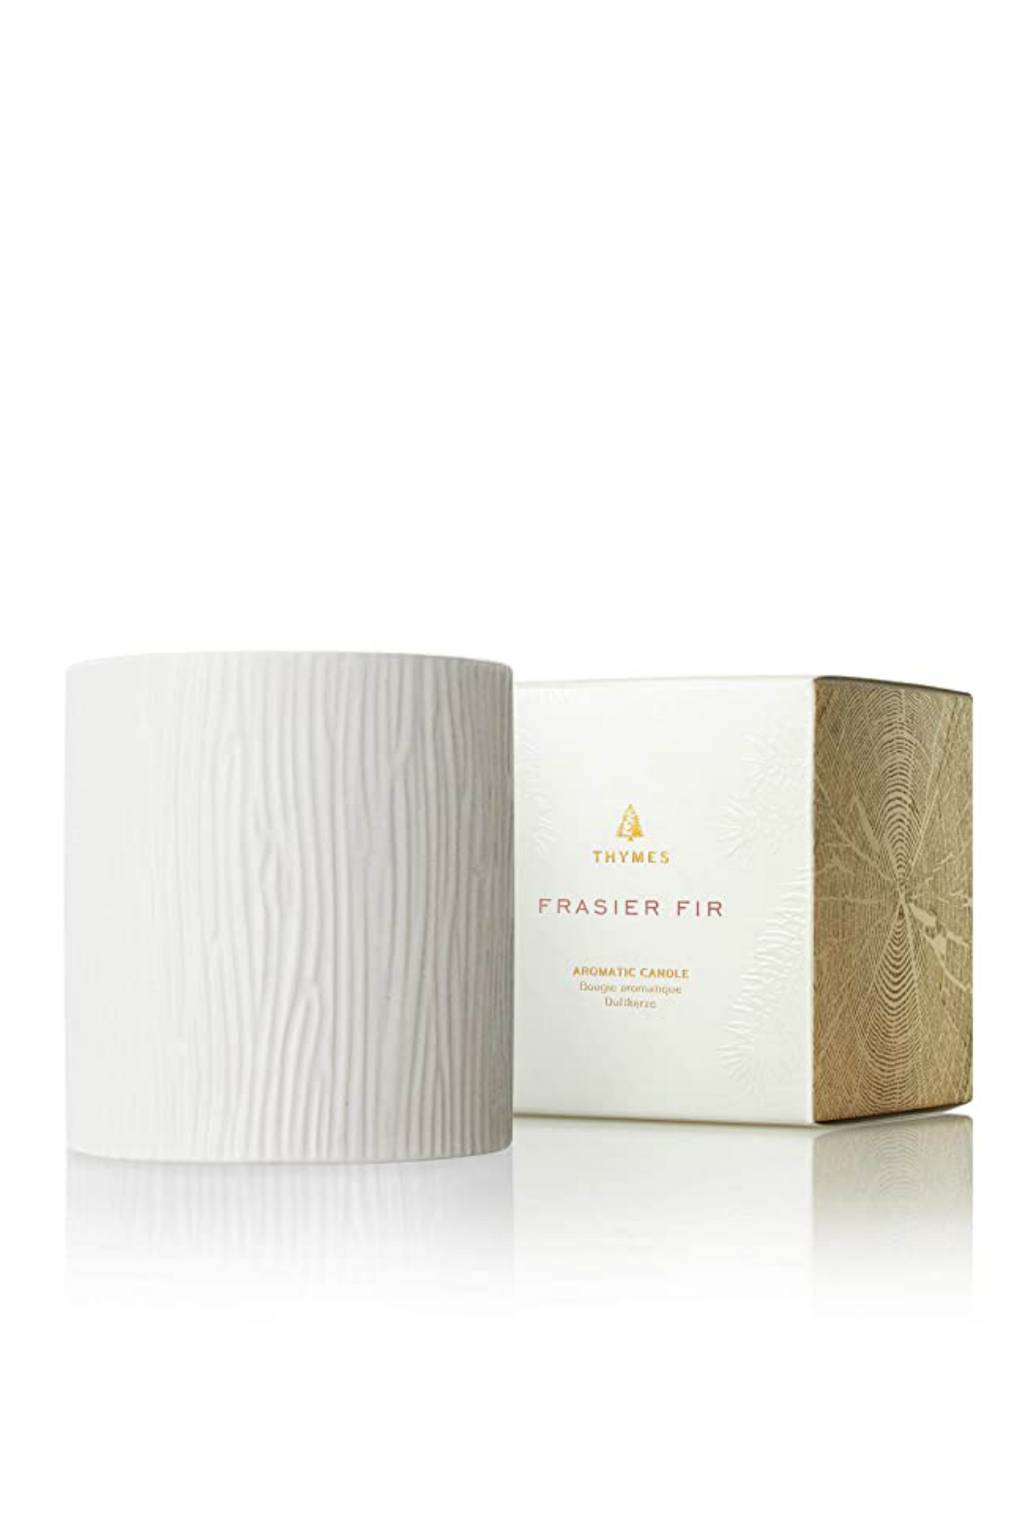 Thymes Frasier Fir Gilded Ceramic Poured Candle